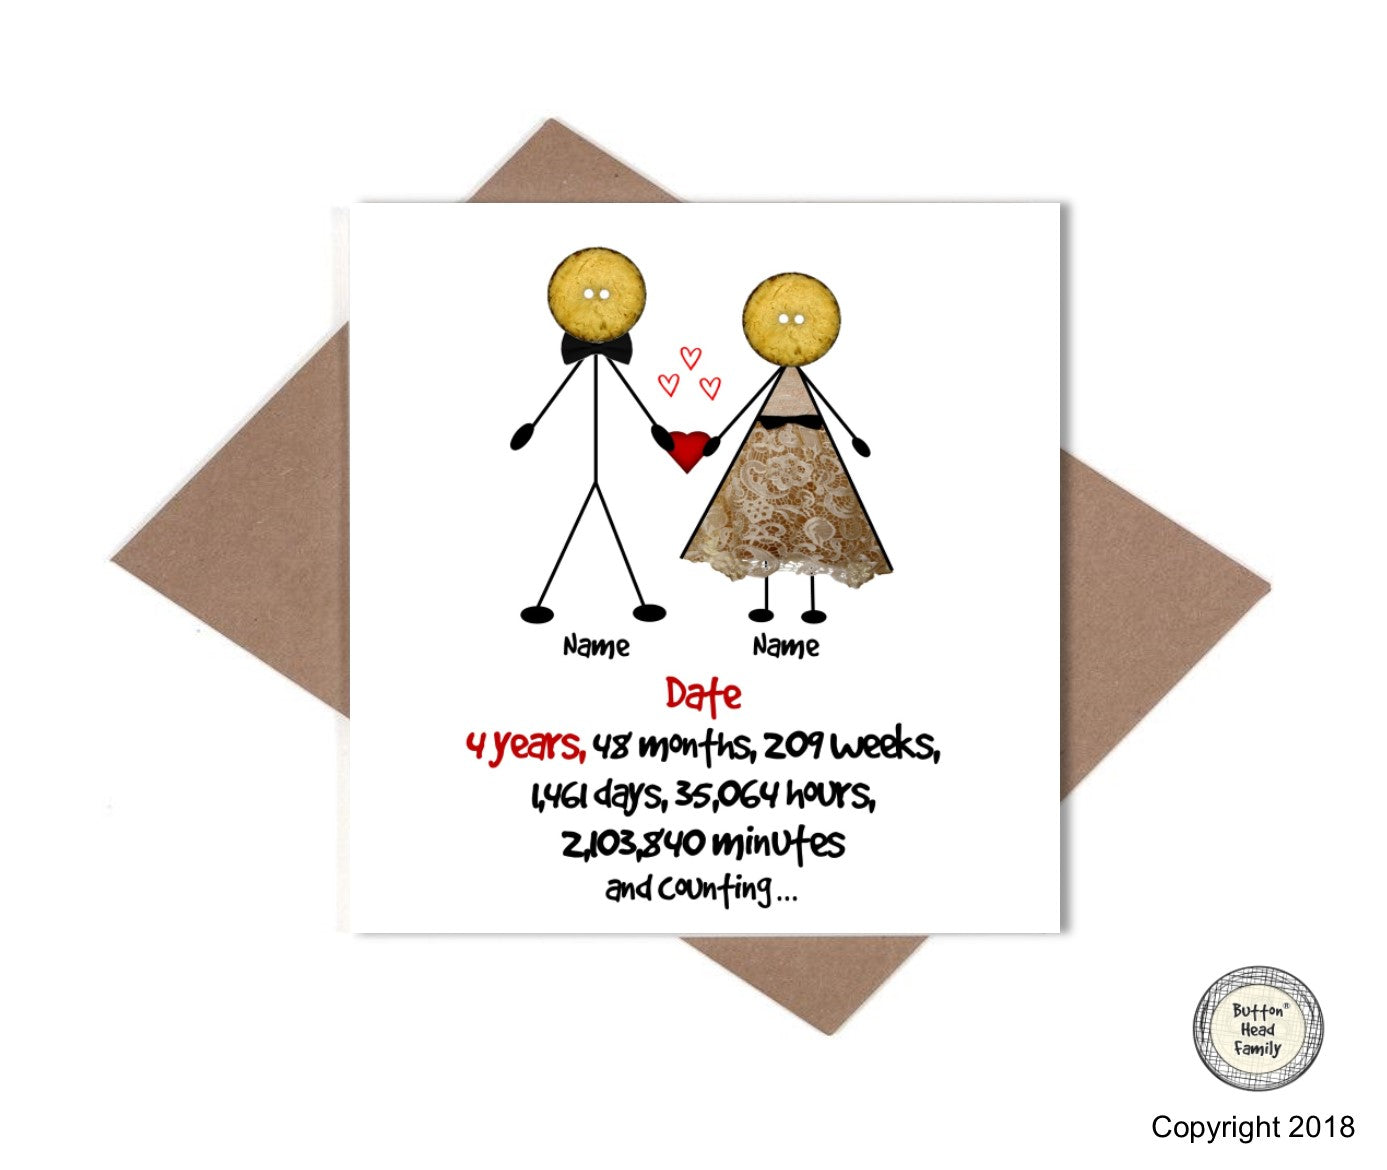 Button Head Family Personalised 4 Year Wedding Anniversary Card Lu Lu S Personal Gifts